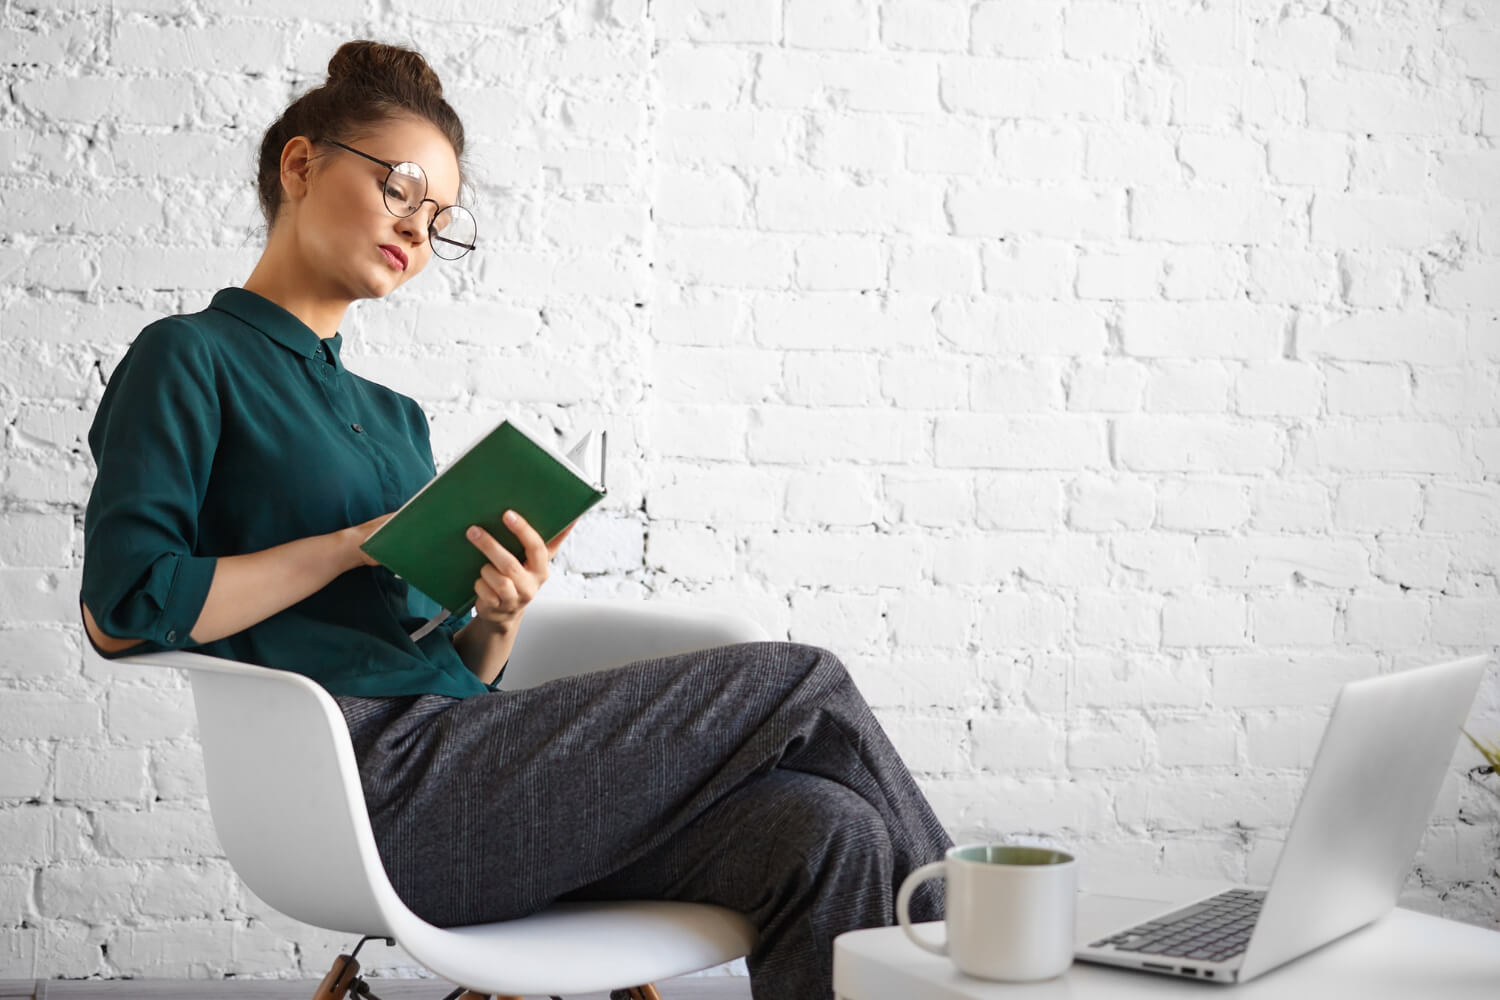 people-job-technology-modern-lifestyle-concept-portrait-concentrated-serious-businesswoman-stylish-eyewear-working-remotely-cafe-writing-diary-sitting-with-laptop-cup